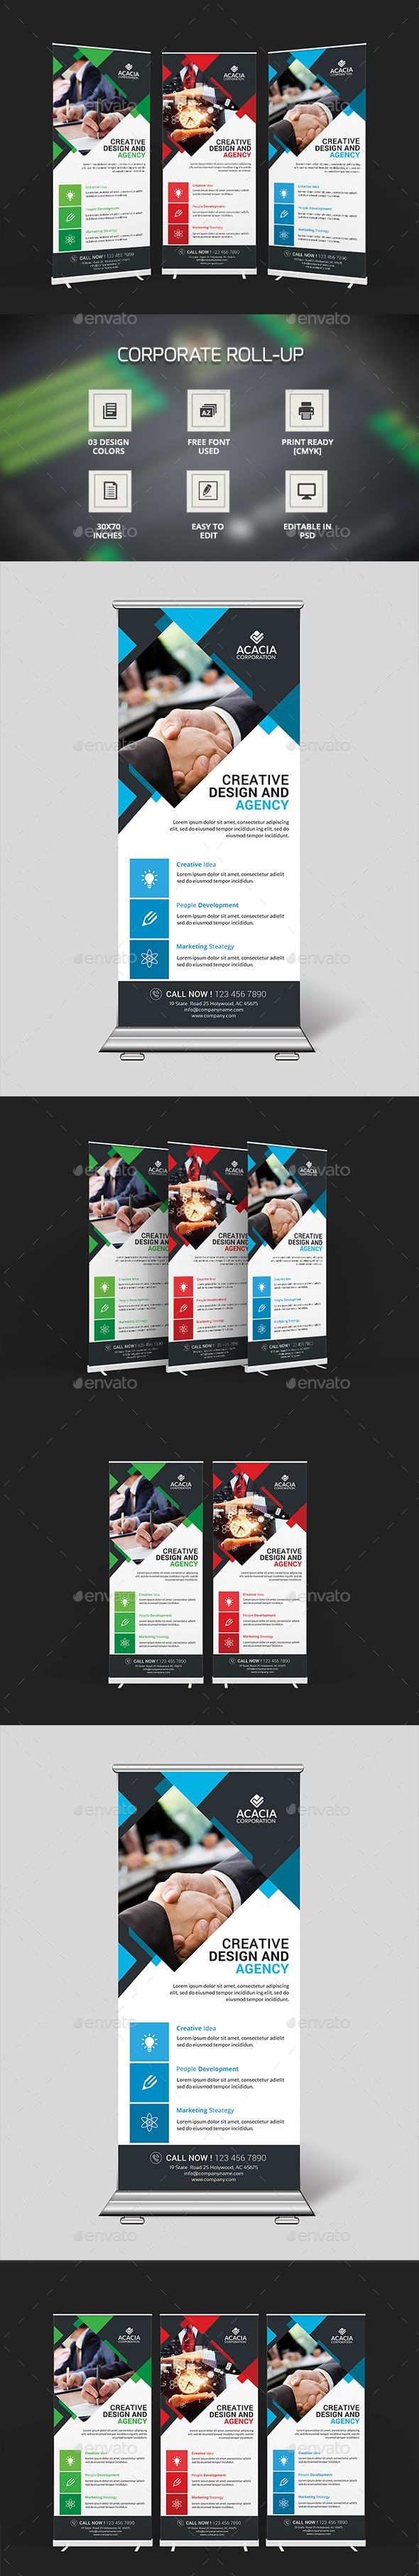 Simple Roll-Up Banners Template PSD. Download here: http://graphicriver.net/item/simple-rollup-banners/16072501?ref=ksioks